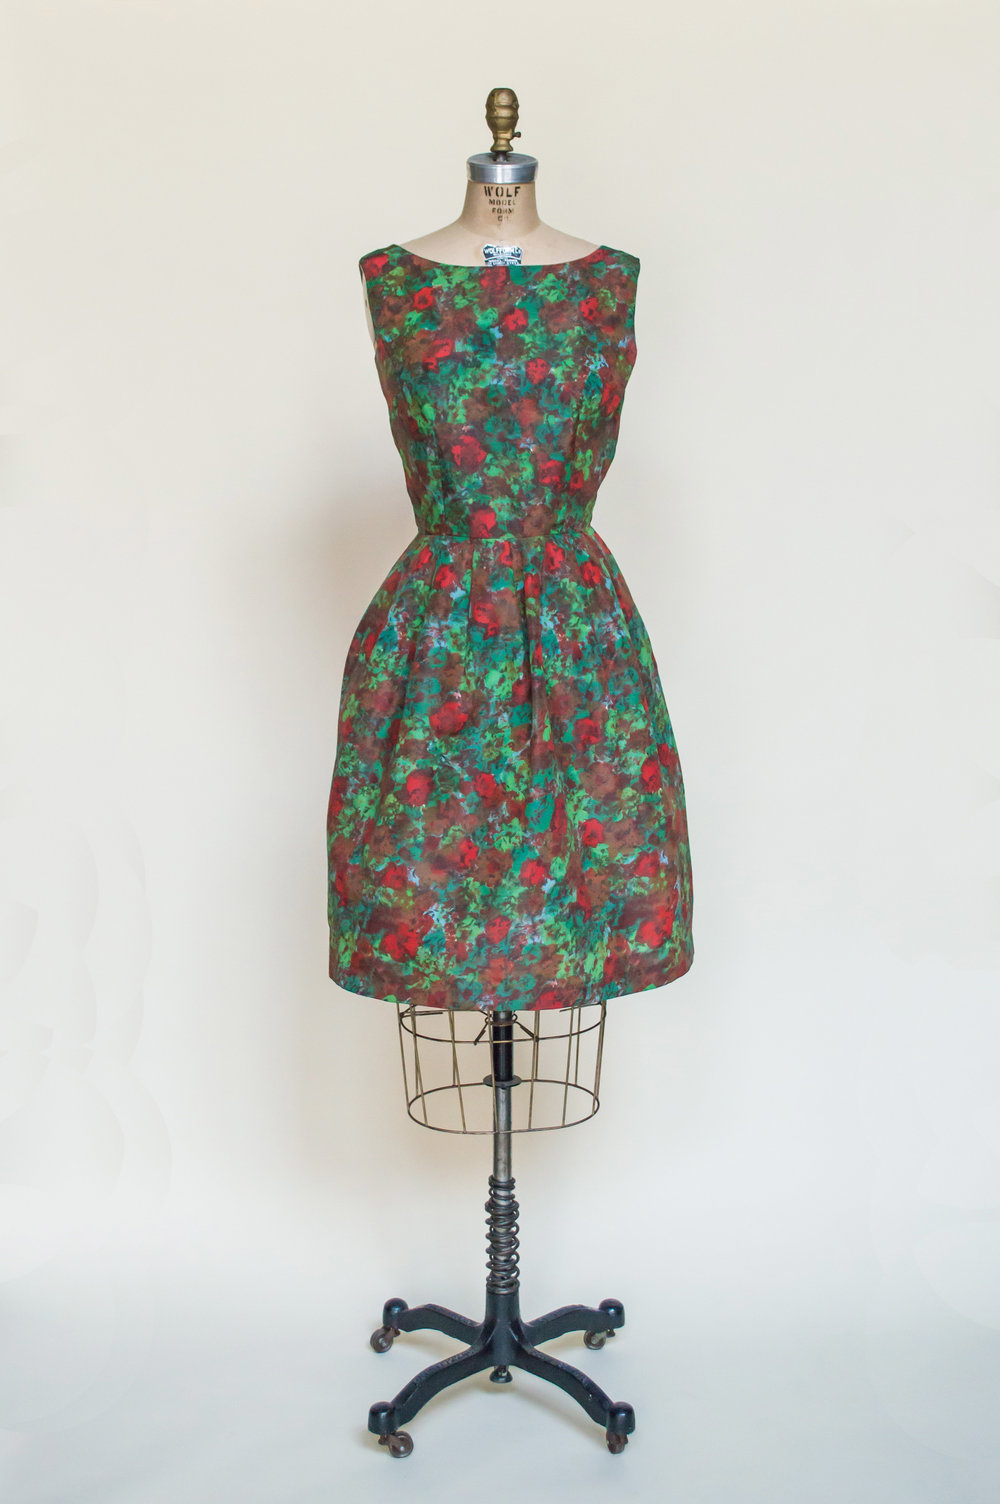 1960s-red-floral-dress-01.jpg